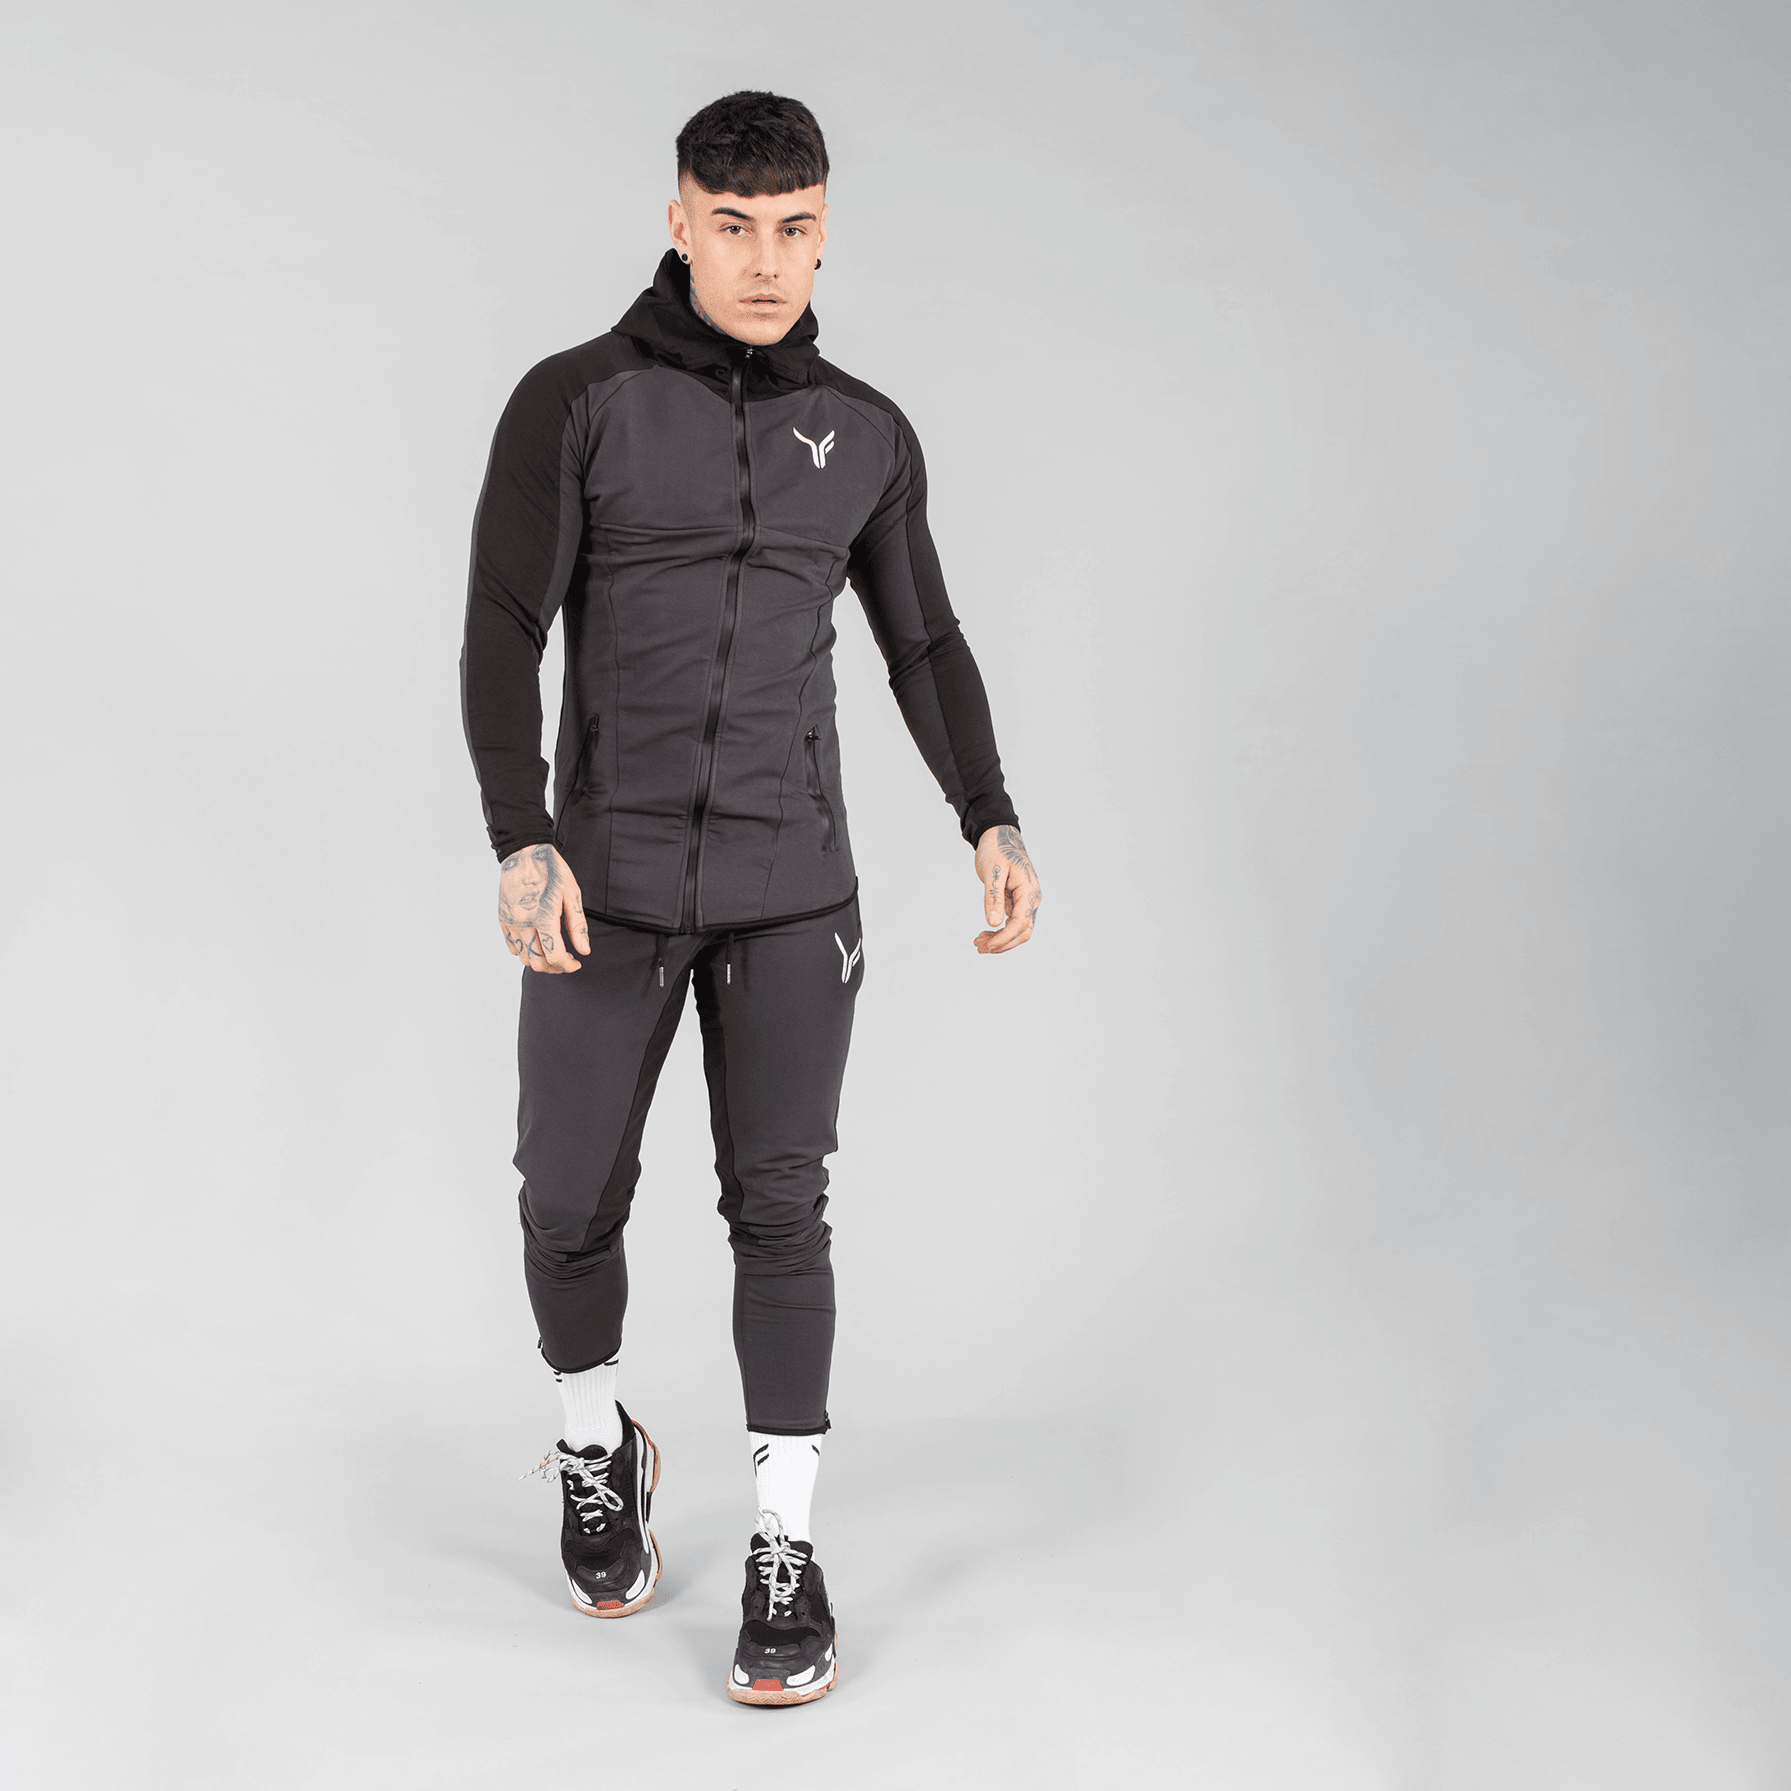 Versa Forma | Chale Track Zip - Charcoal/Black